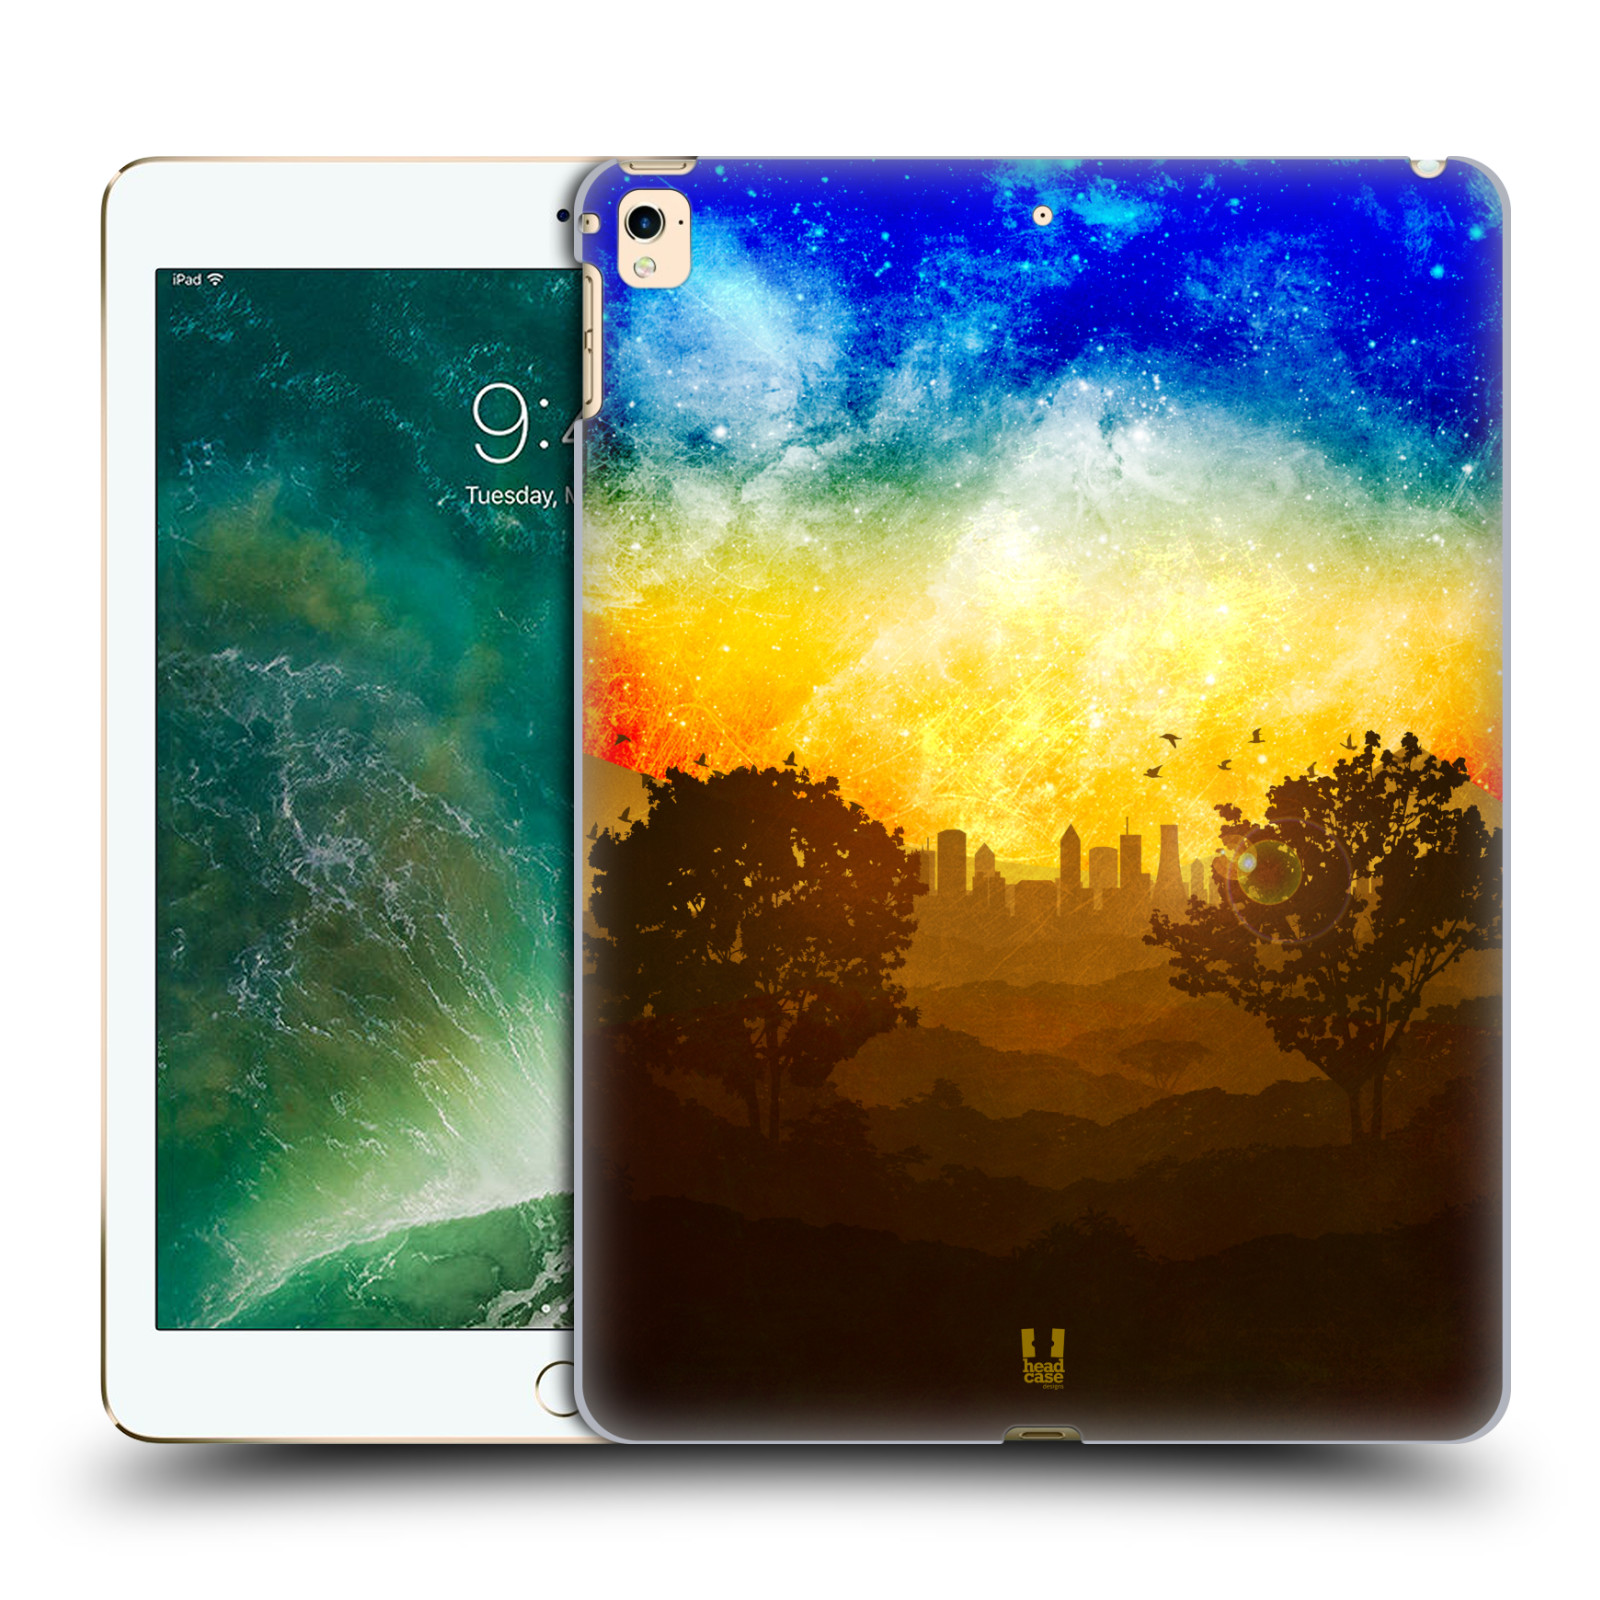 HEAD CASE DESIGNS LIFESCAPES SILHOUETTES BACK CASE FOR APPLE iPAD ...